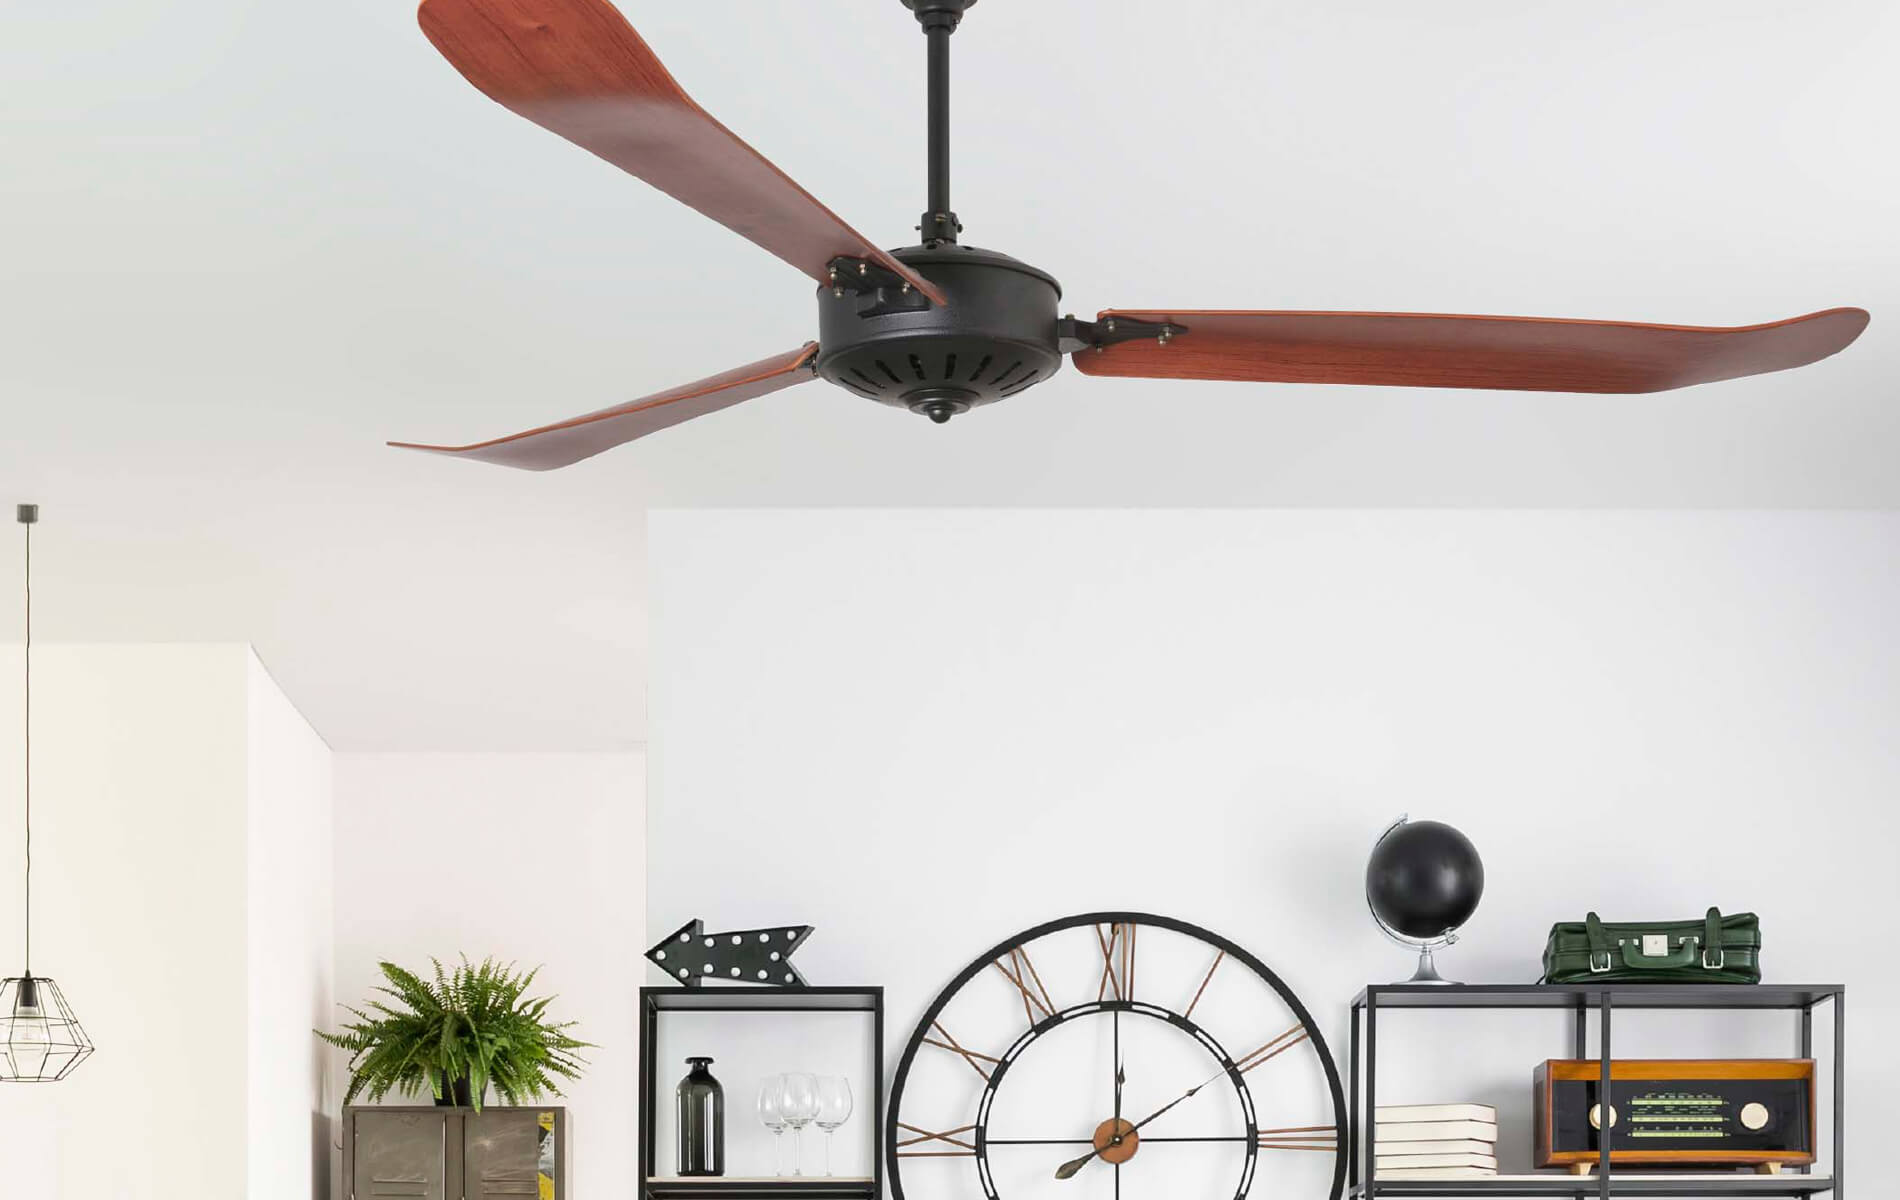 More information of Faro AOBA ceiling fan.